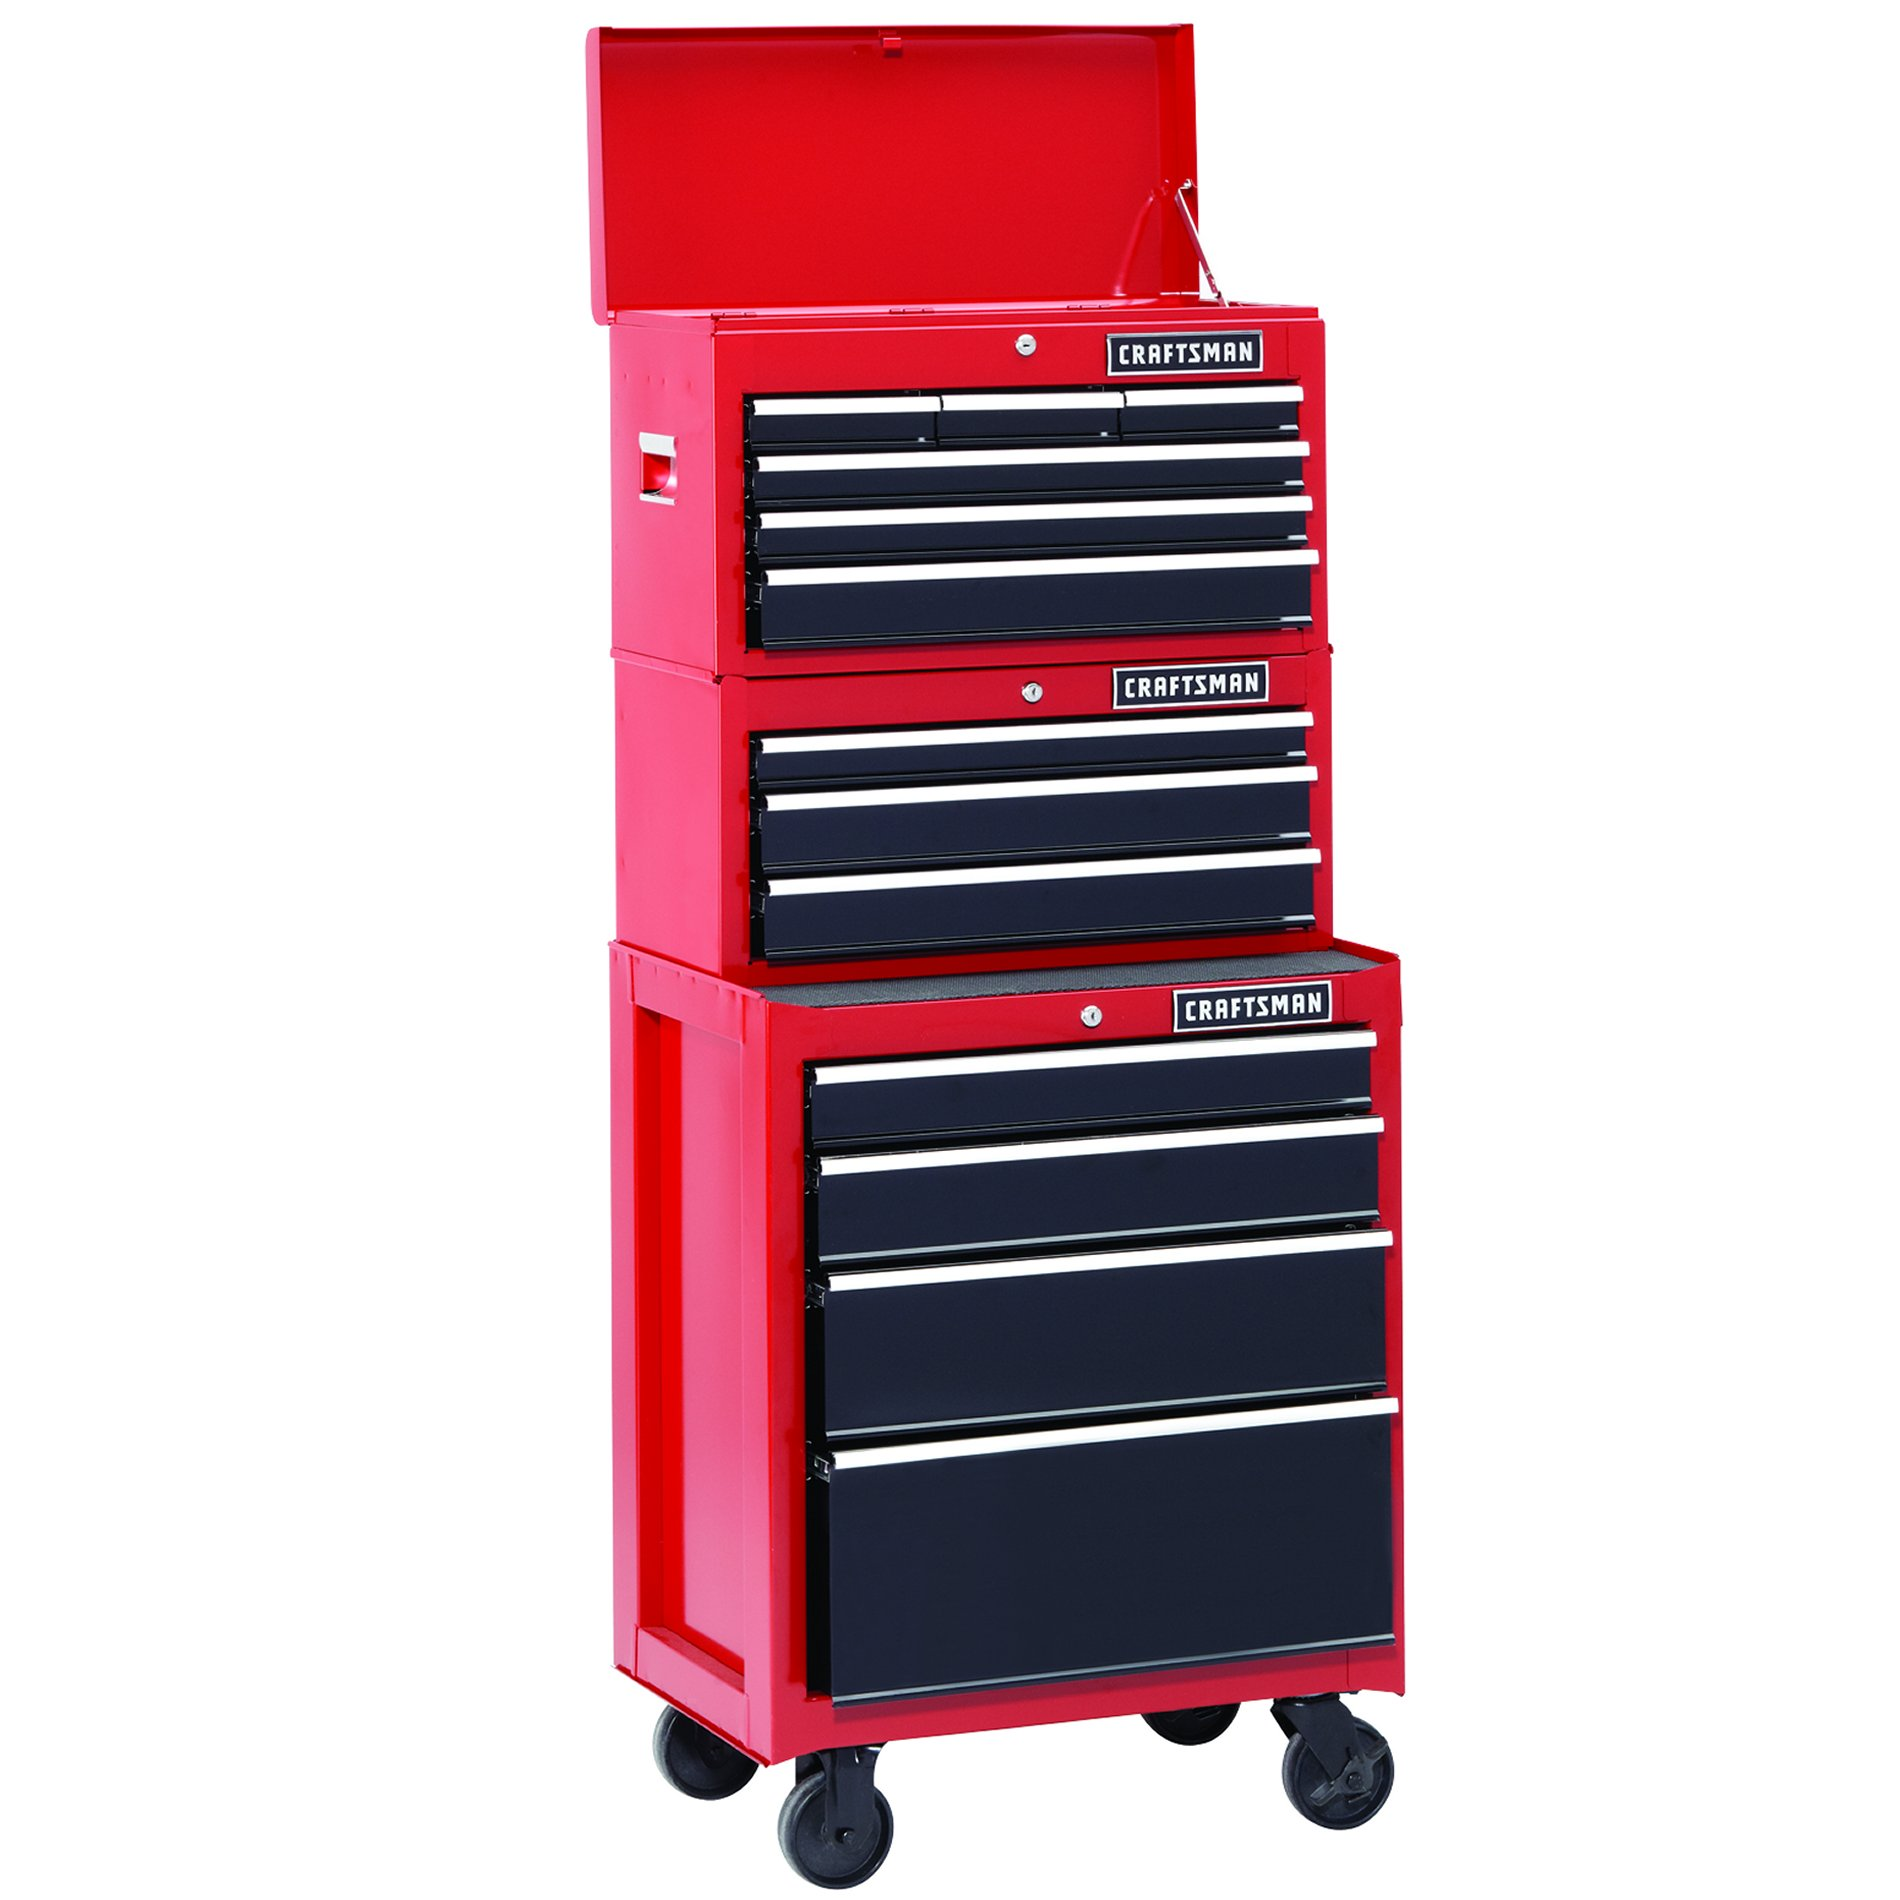 26 In. 13-Drawer Heavy-Duty Ball Bearing 3-PC Tool Chest Combo Red/Black